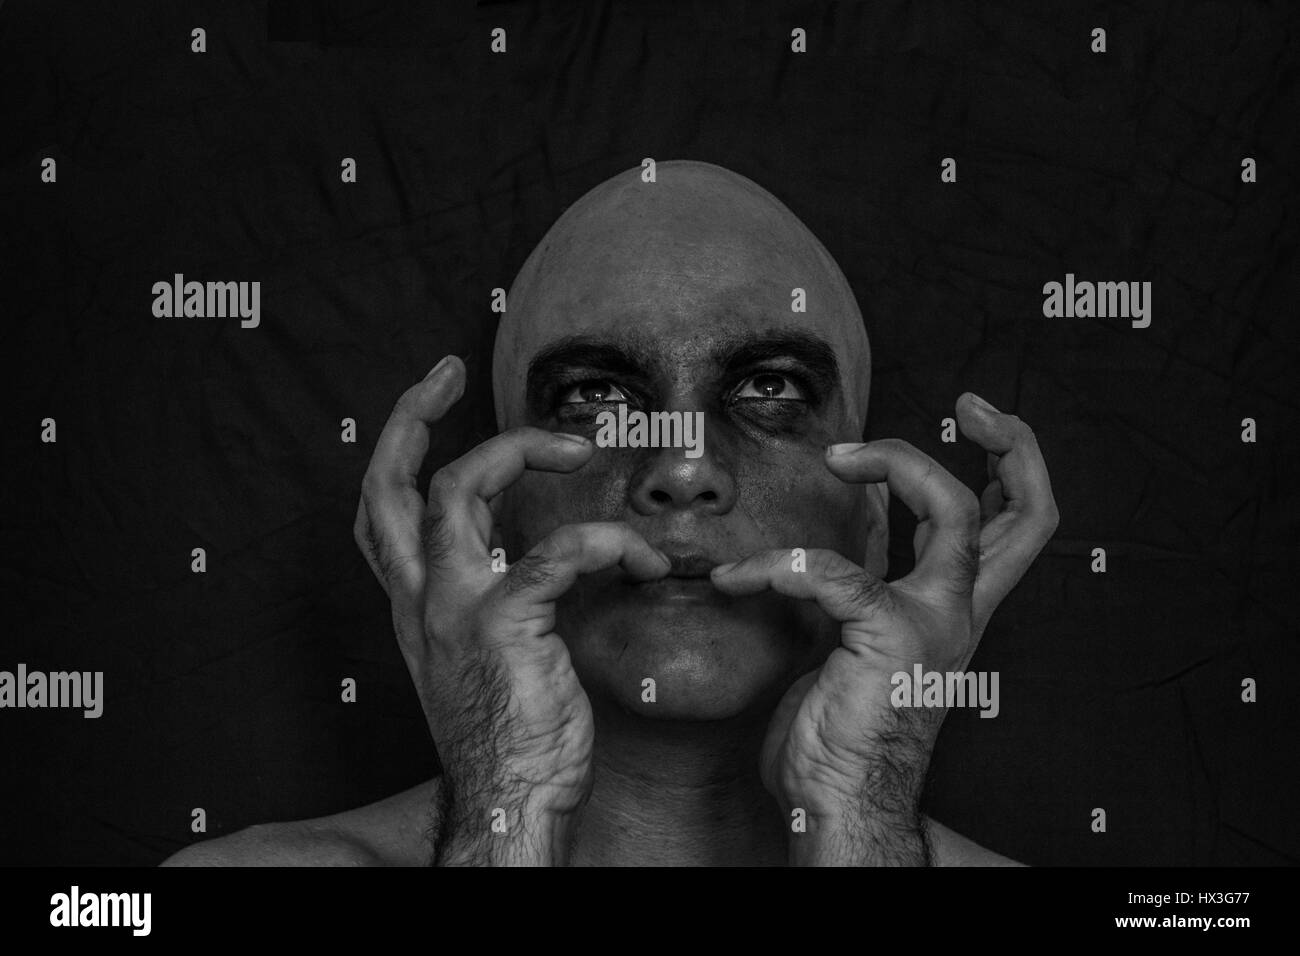 Black ans white of a Man with makeup on his eyes - Stock Image